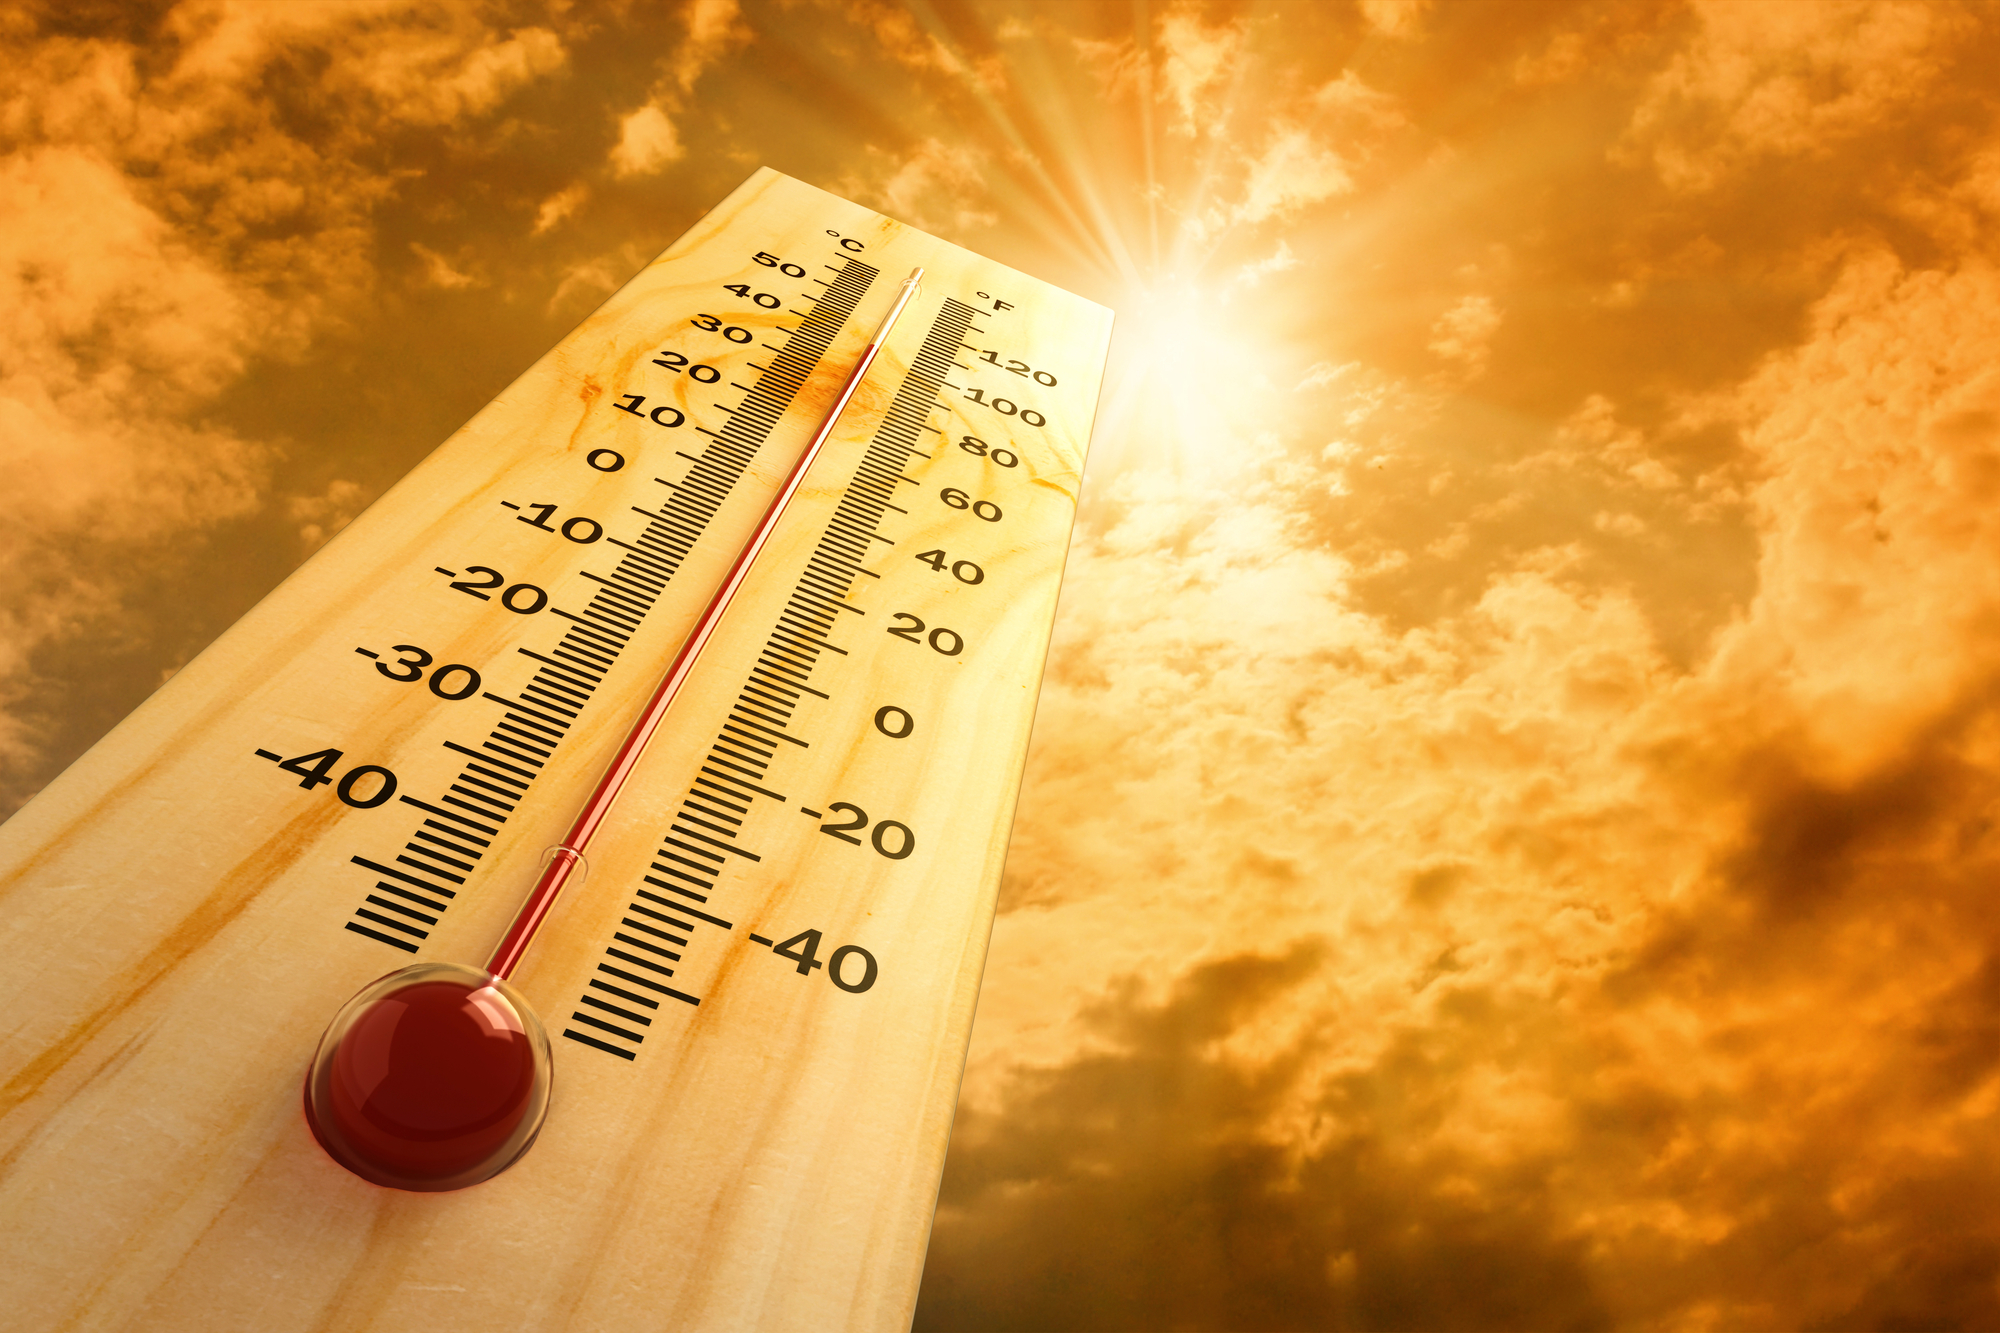 A thermometer rises in hot weather